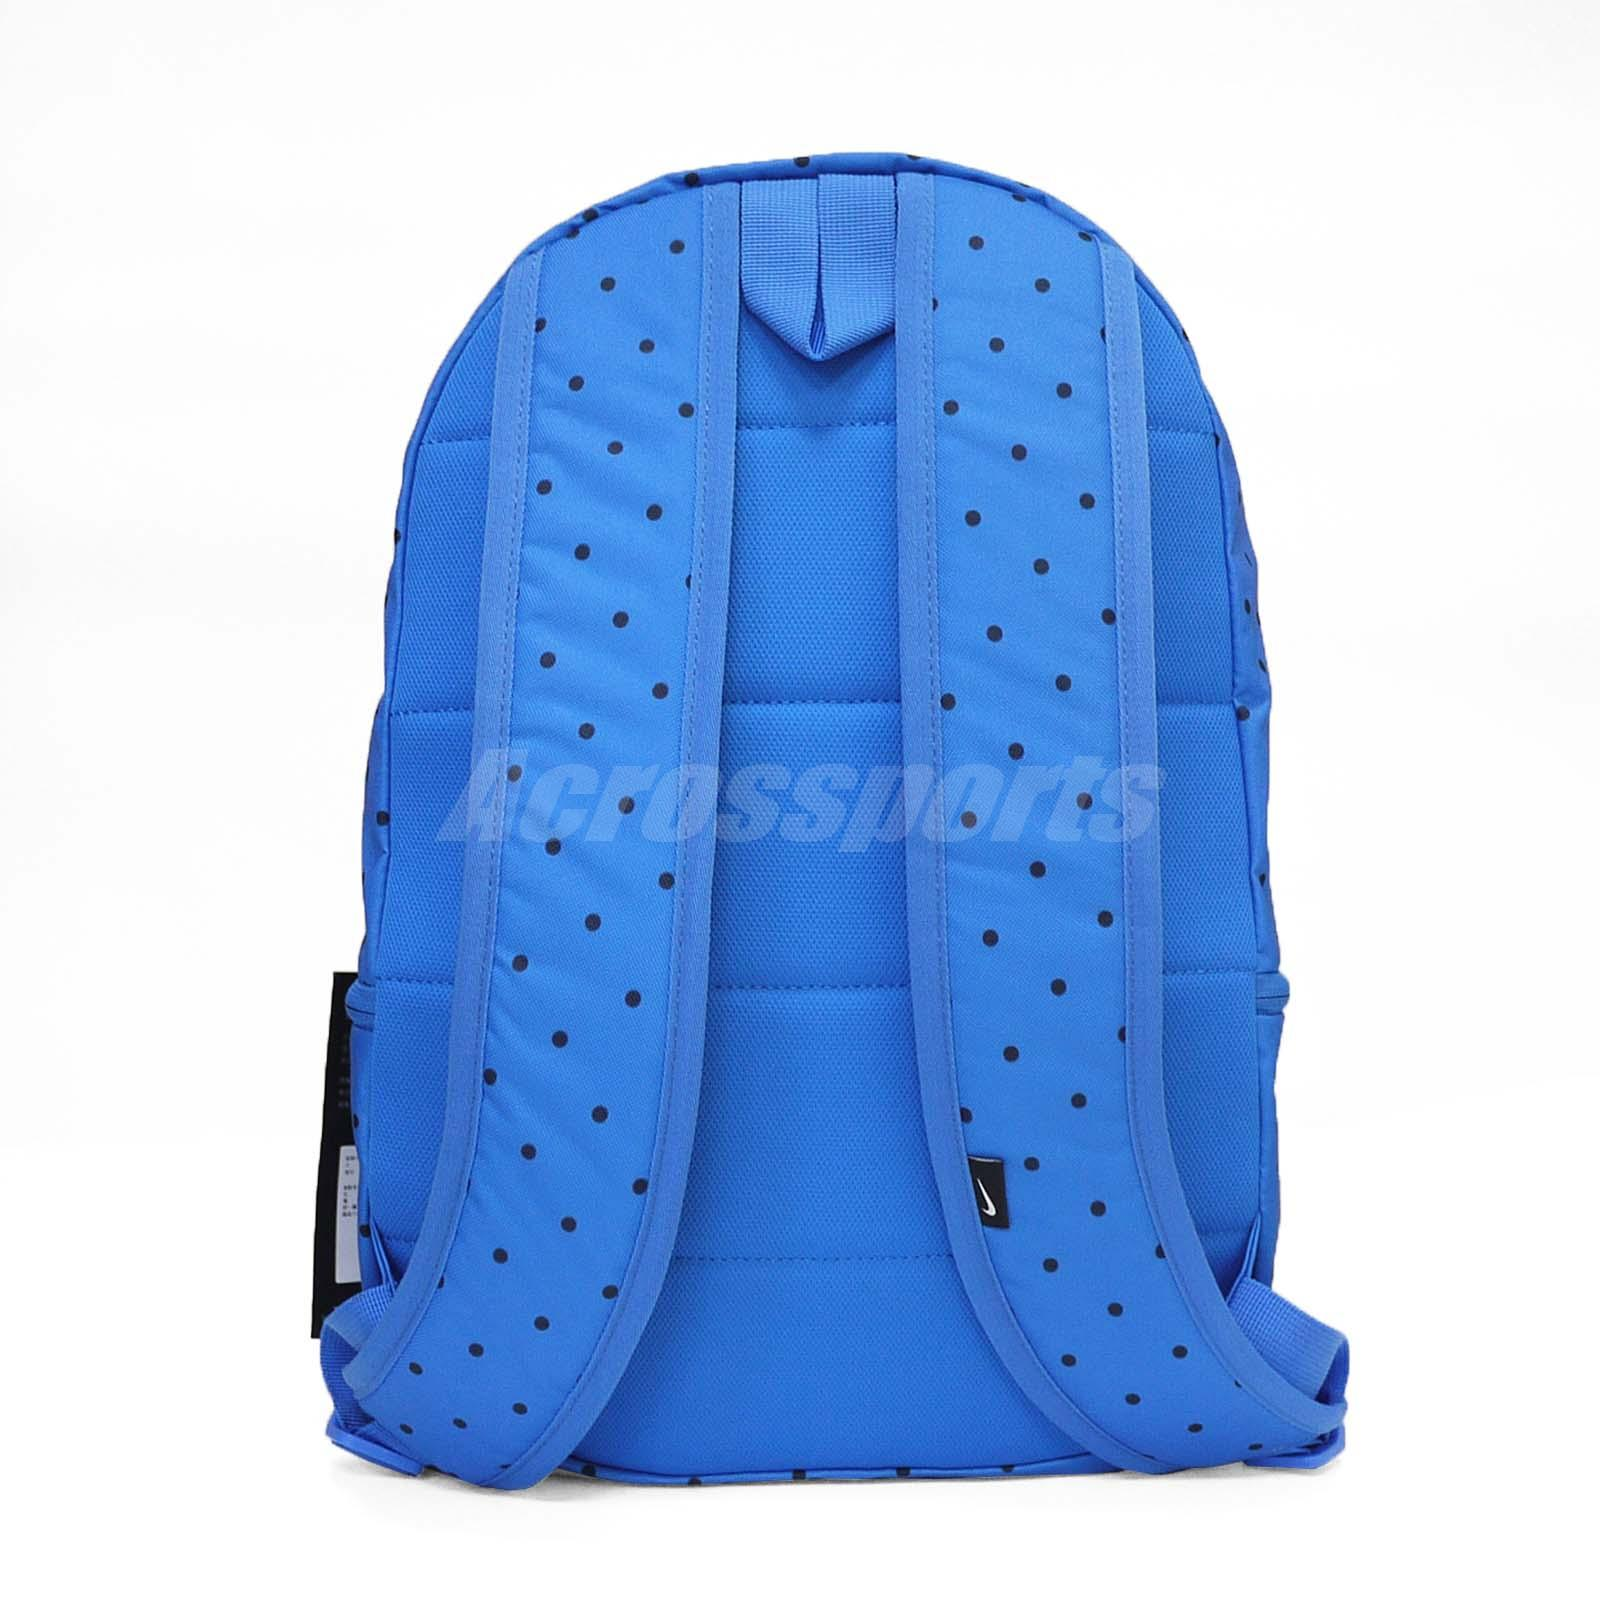 5955304e2a76 Details about Nike Sportswear Heritage Printed Backpack Dot Sport Training  Bag Blue BA5761-403